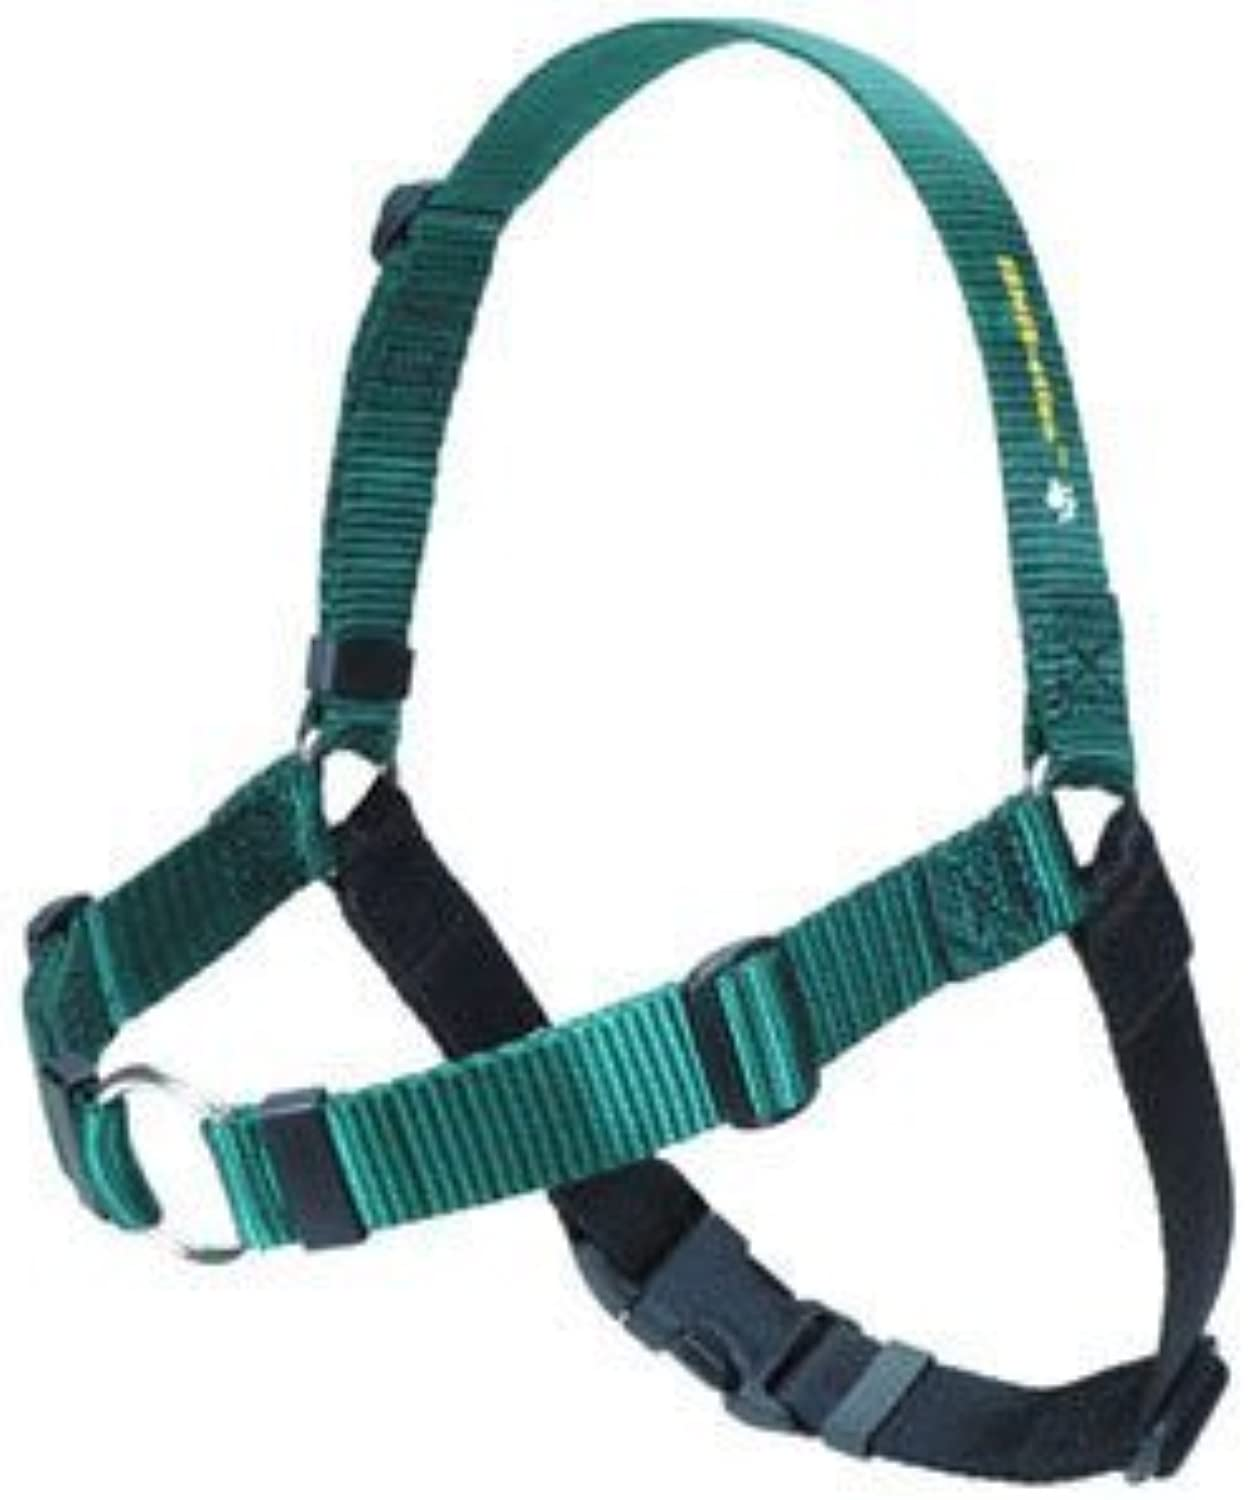 SENSEation NoPull Dog Harness (Green, Small)